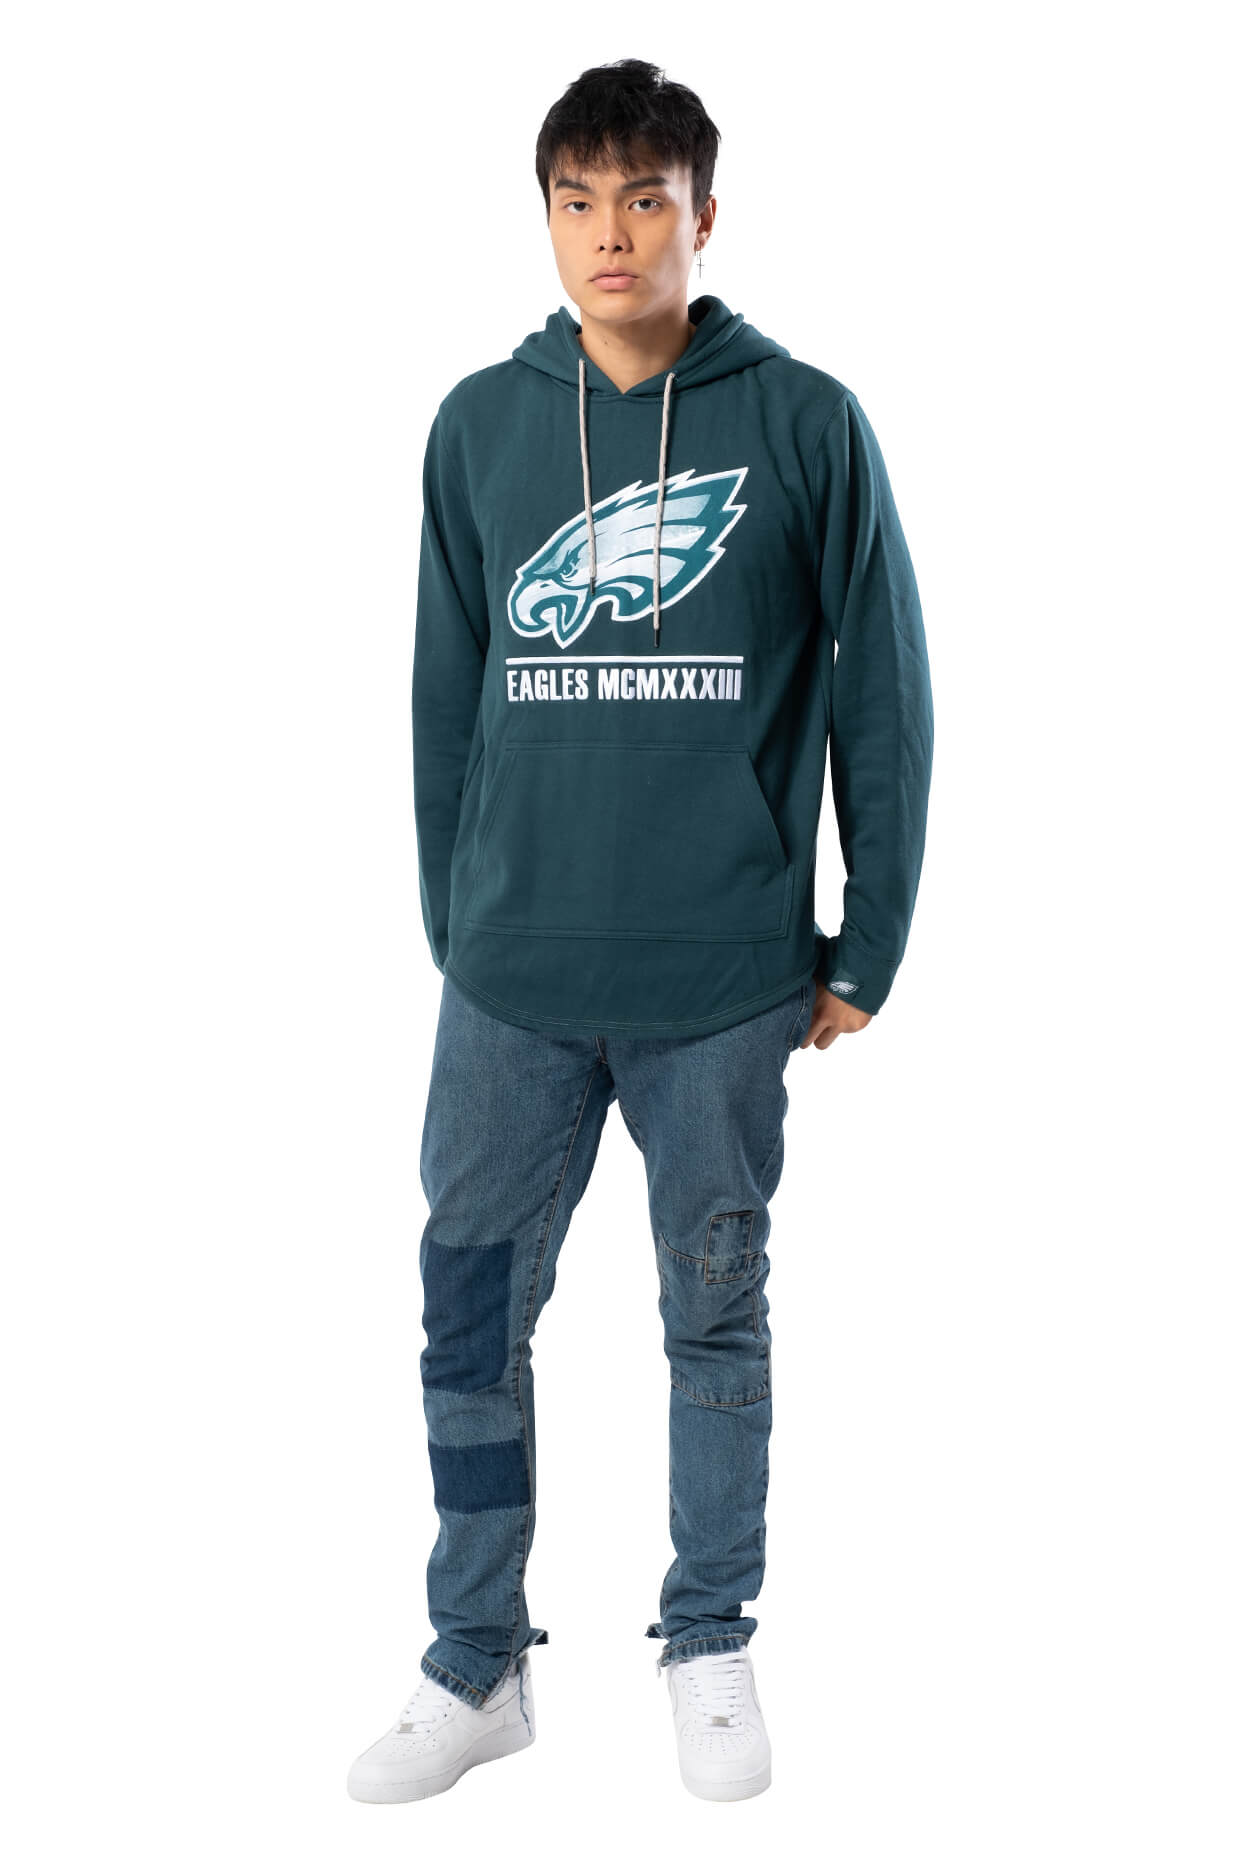 NFL Philadelphia Eagles Men's Embroidered Hoodie|Philadelphia Eagles